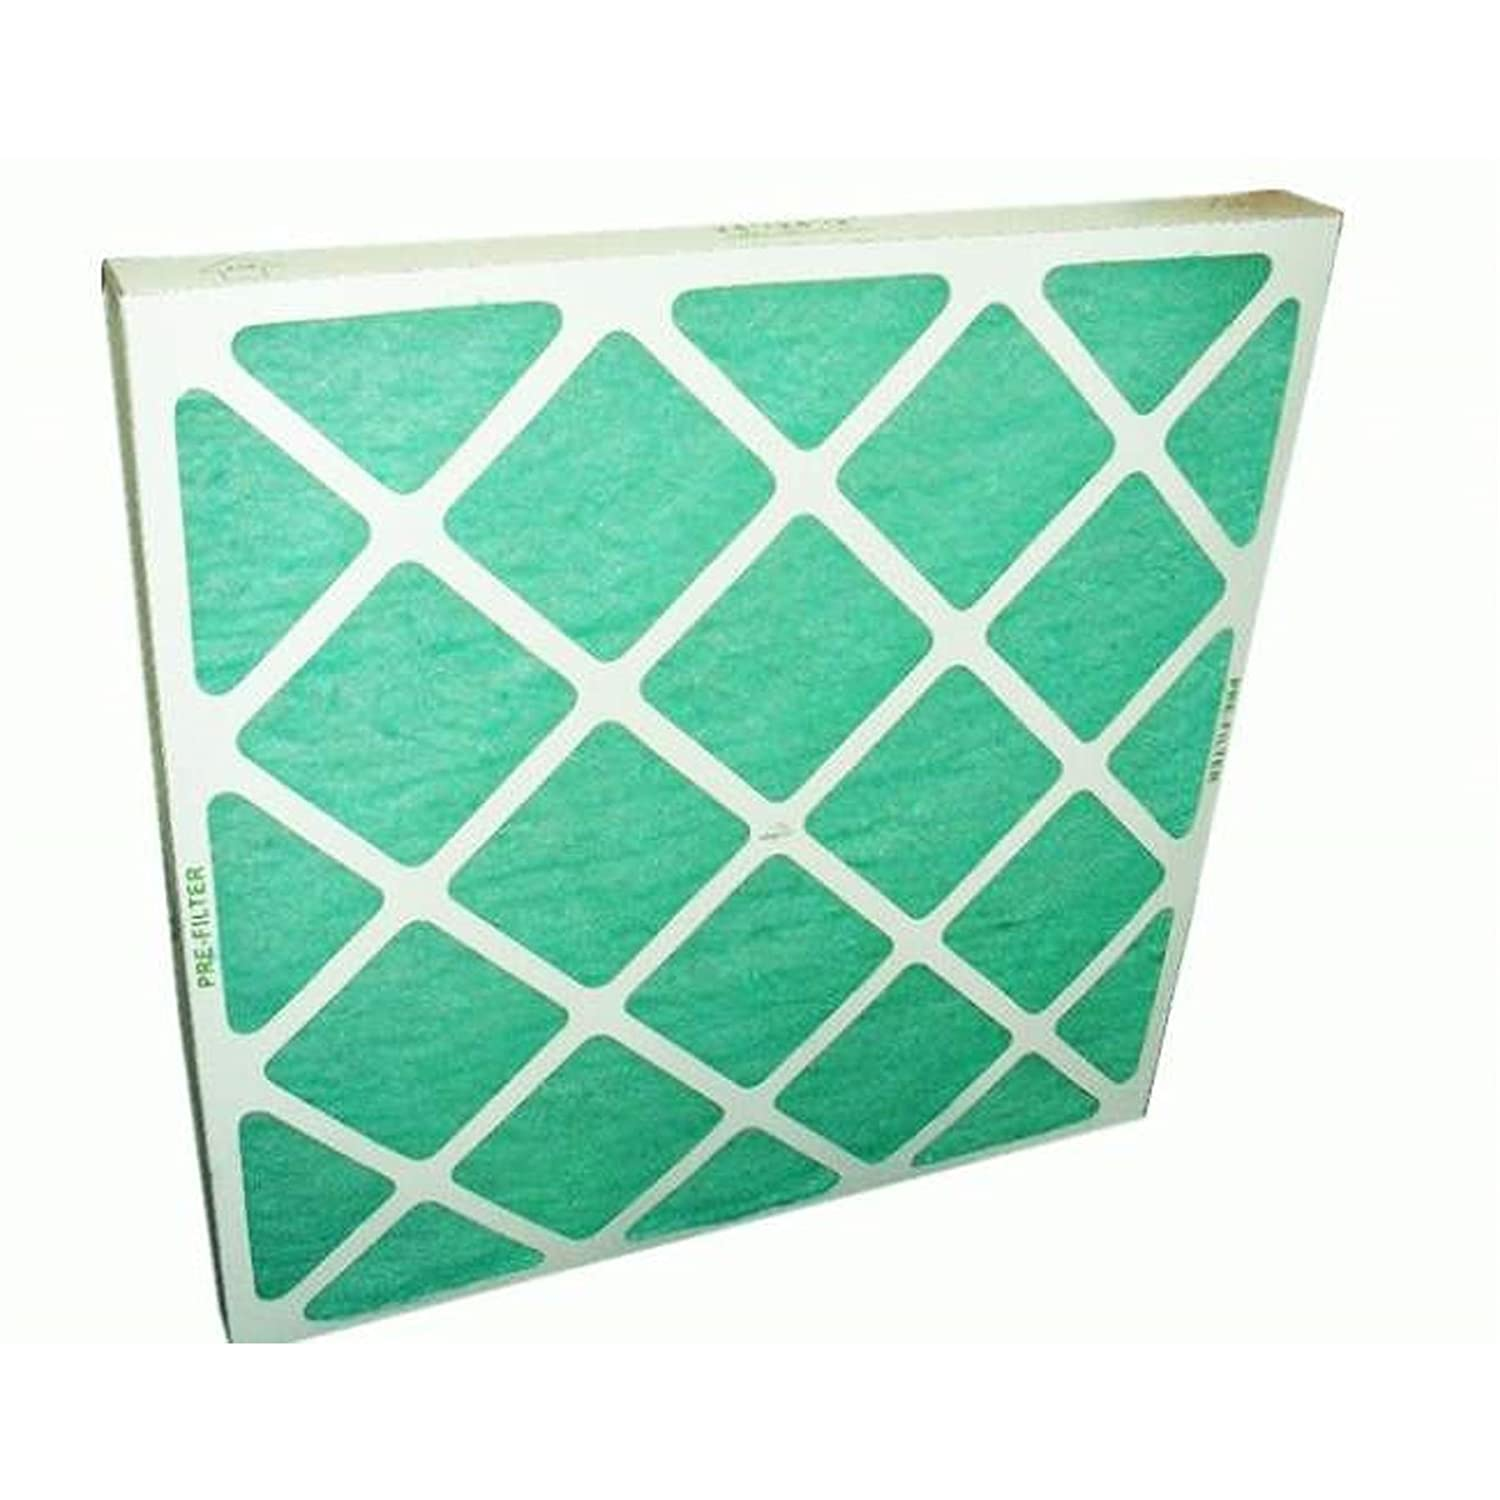 Spray Booth Filter Card Lattice Front & Back Filter Media Encapsulated 24 x 24 x 2 inches Starchem